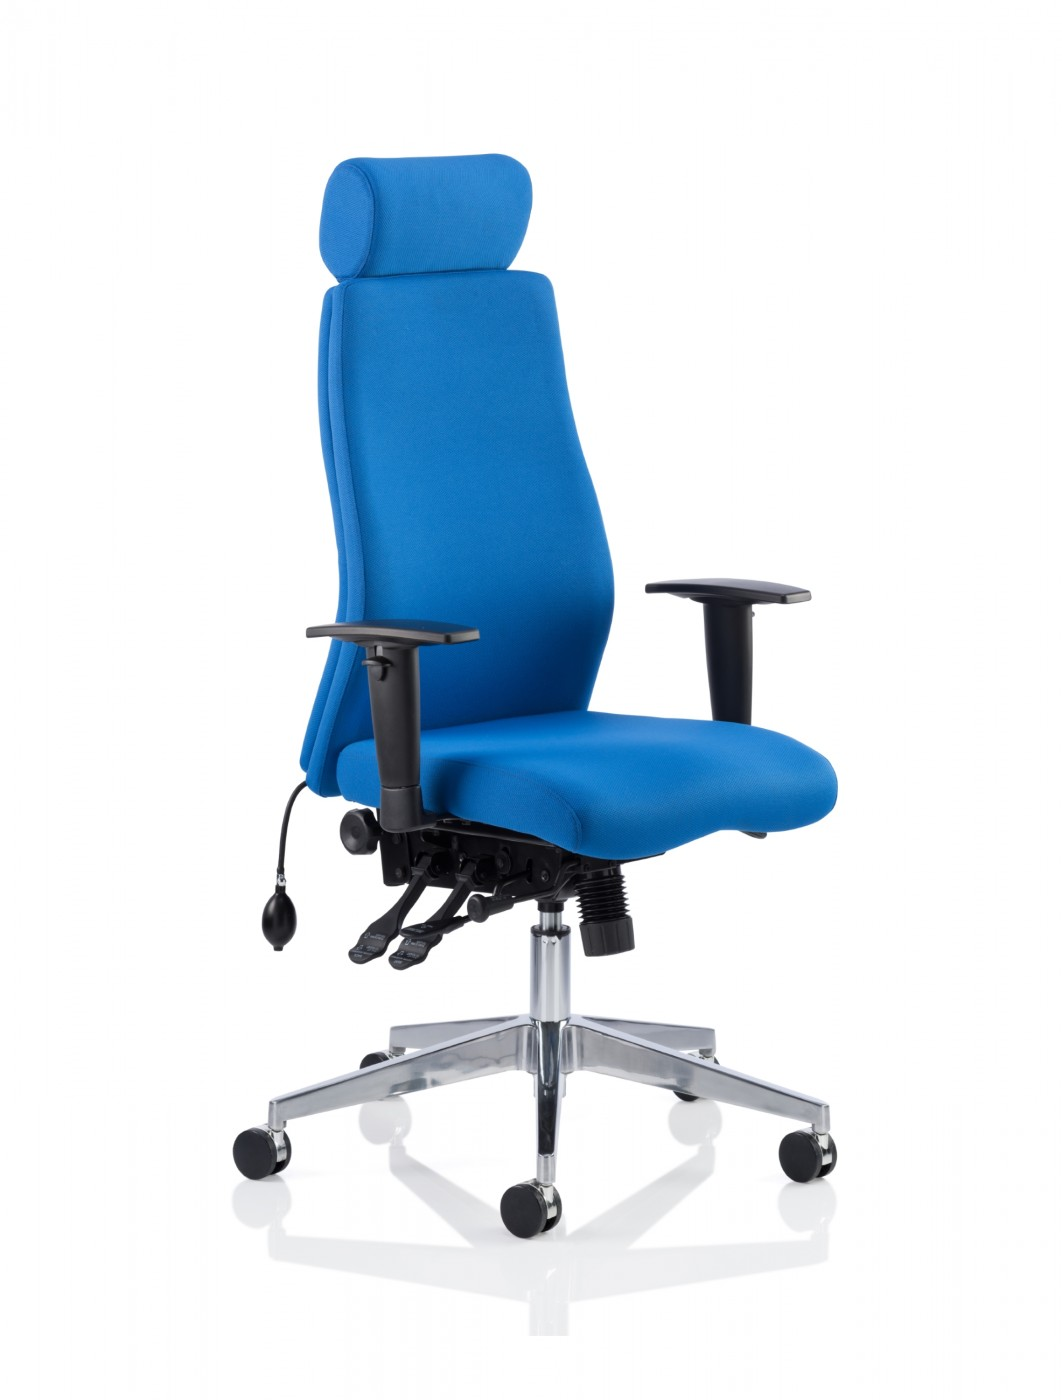 Dynamic Onyx Office Chair With Headrest IVONYX01 IVONYX02 121 Office Furniture